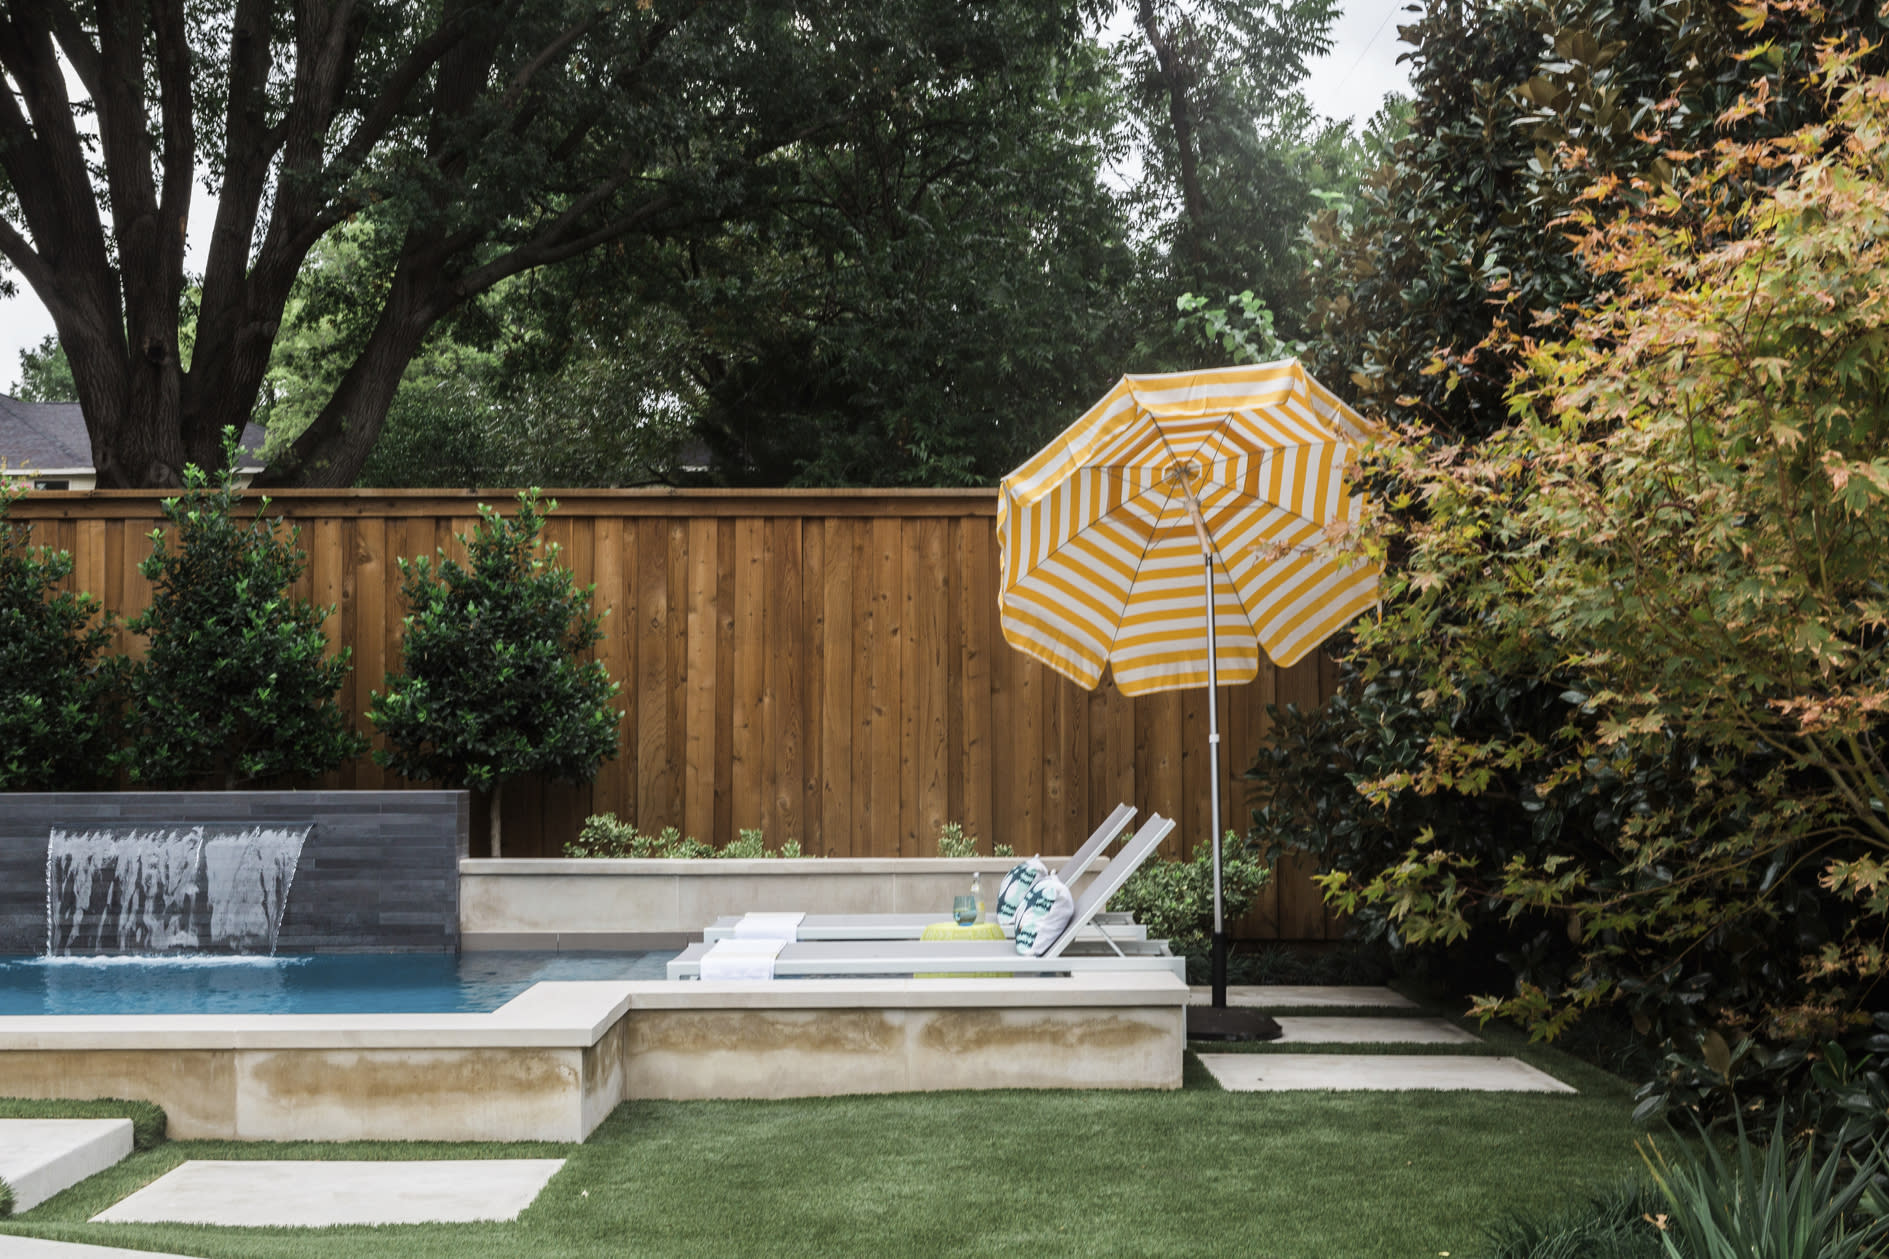 This undated photo shows a home in Texas' backyard area designed by Abbe Fenimore, founder of Studio Ten 25. The seating around backyard swimming pools is often located in direct sunlight, so Fenimore suggests using large, durable and easily positioned umbrellas to allow guests to control their sun exposure. (Heather Hawkins/Abbe Fenimore via AP)